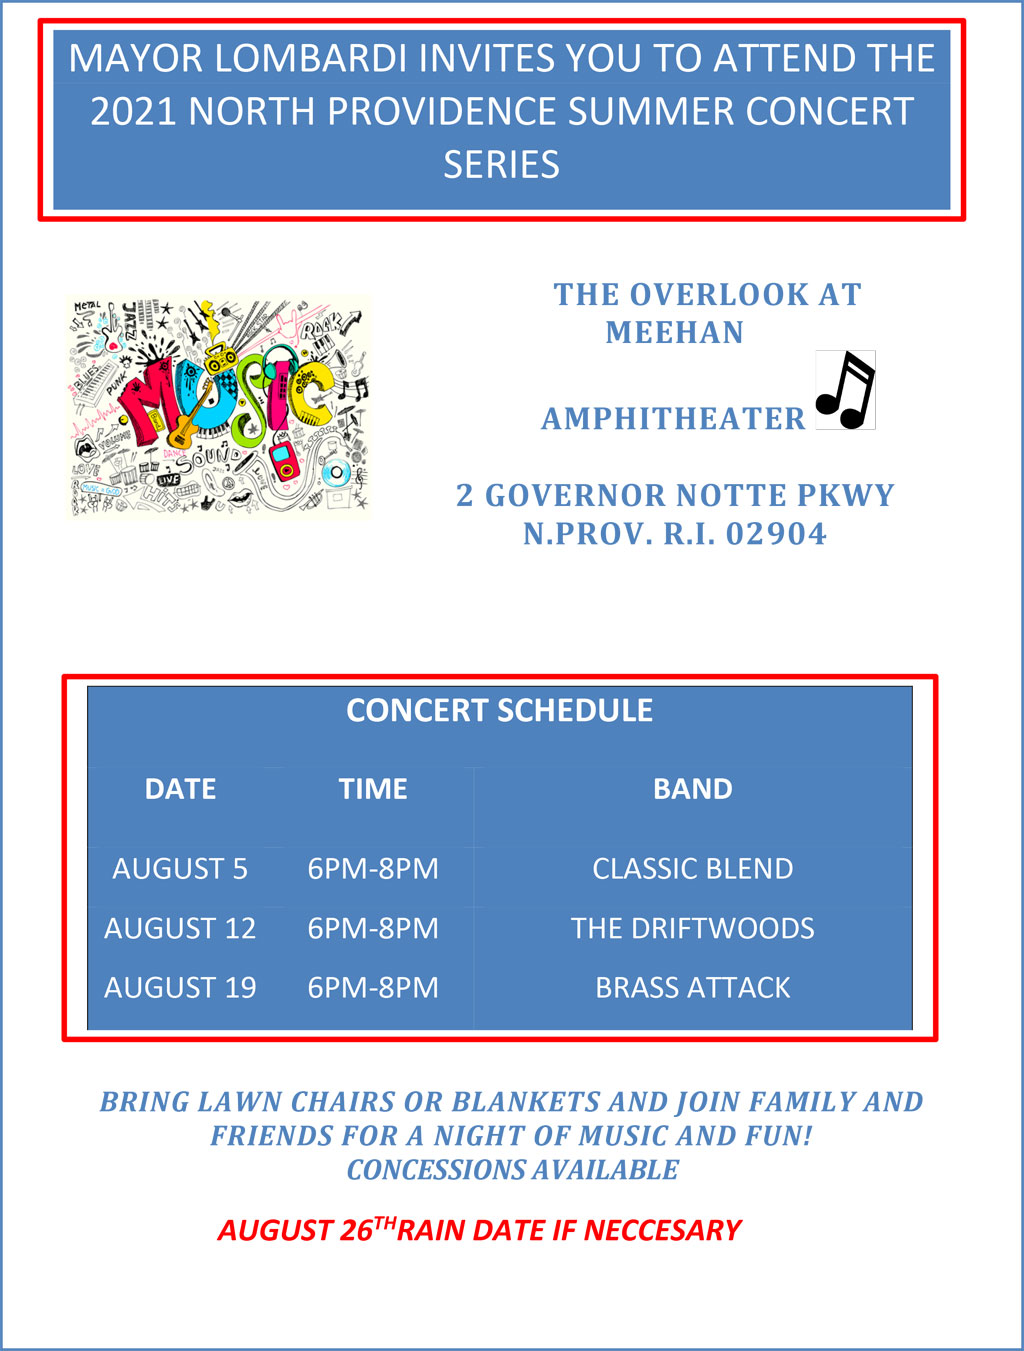 2021 North Providence Summer Concert Series